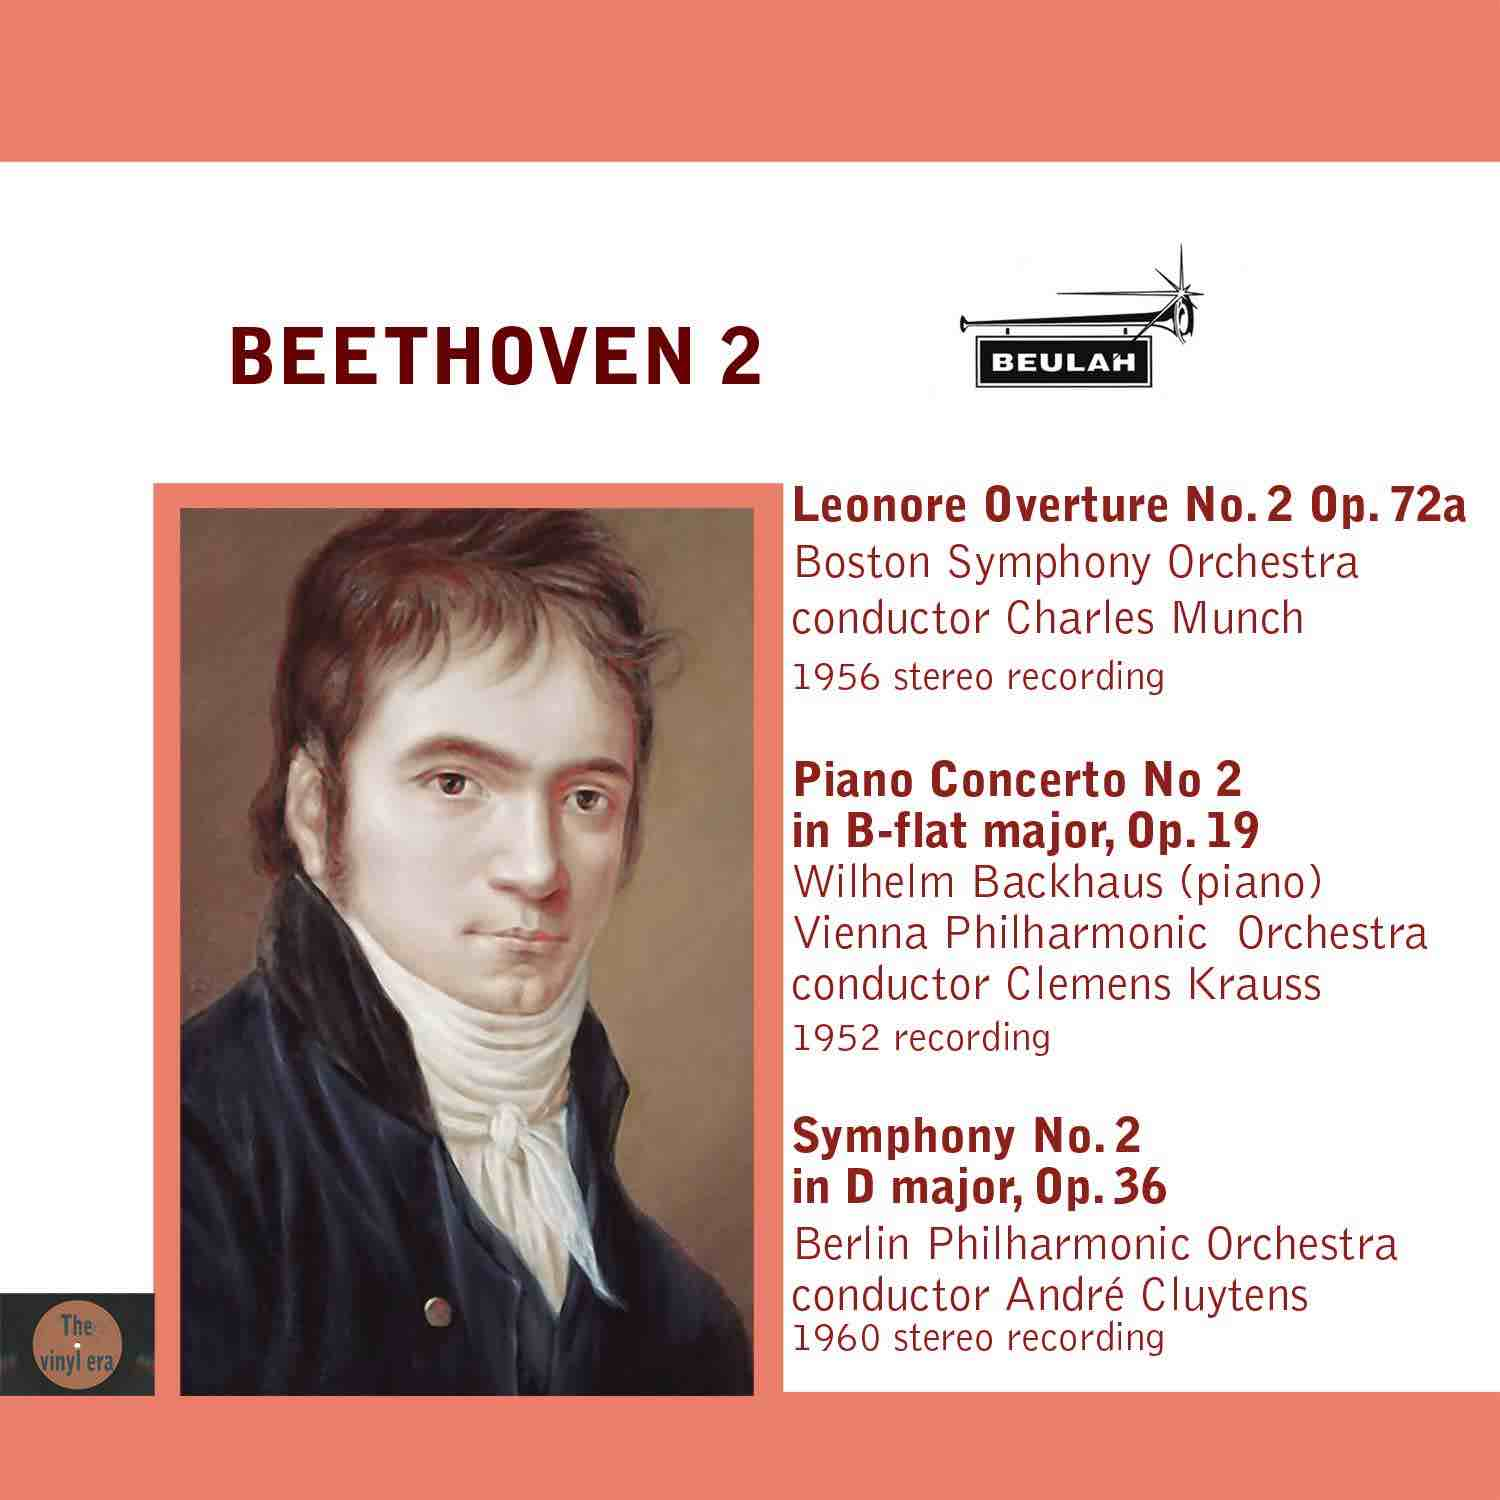 Beethoven symphony number 2 and piano concerto number 2